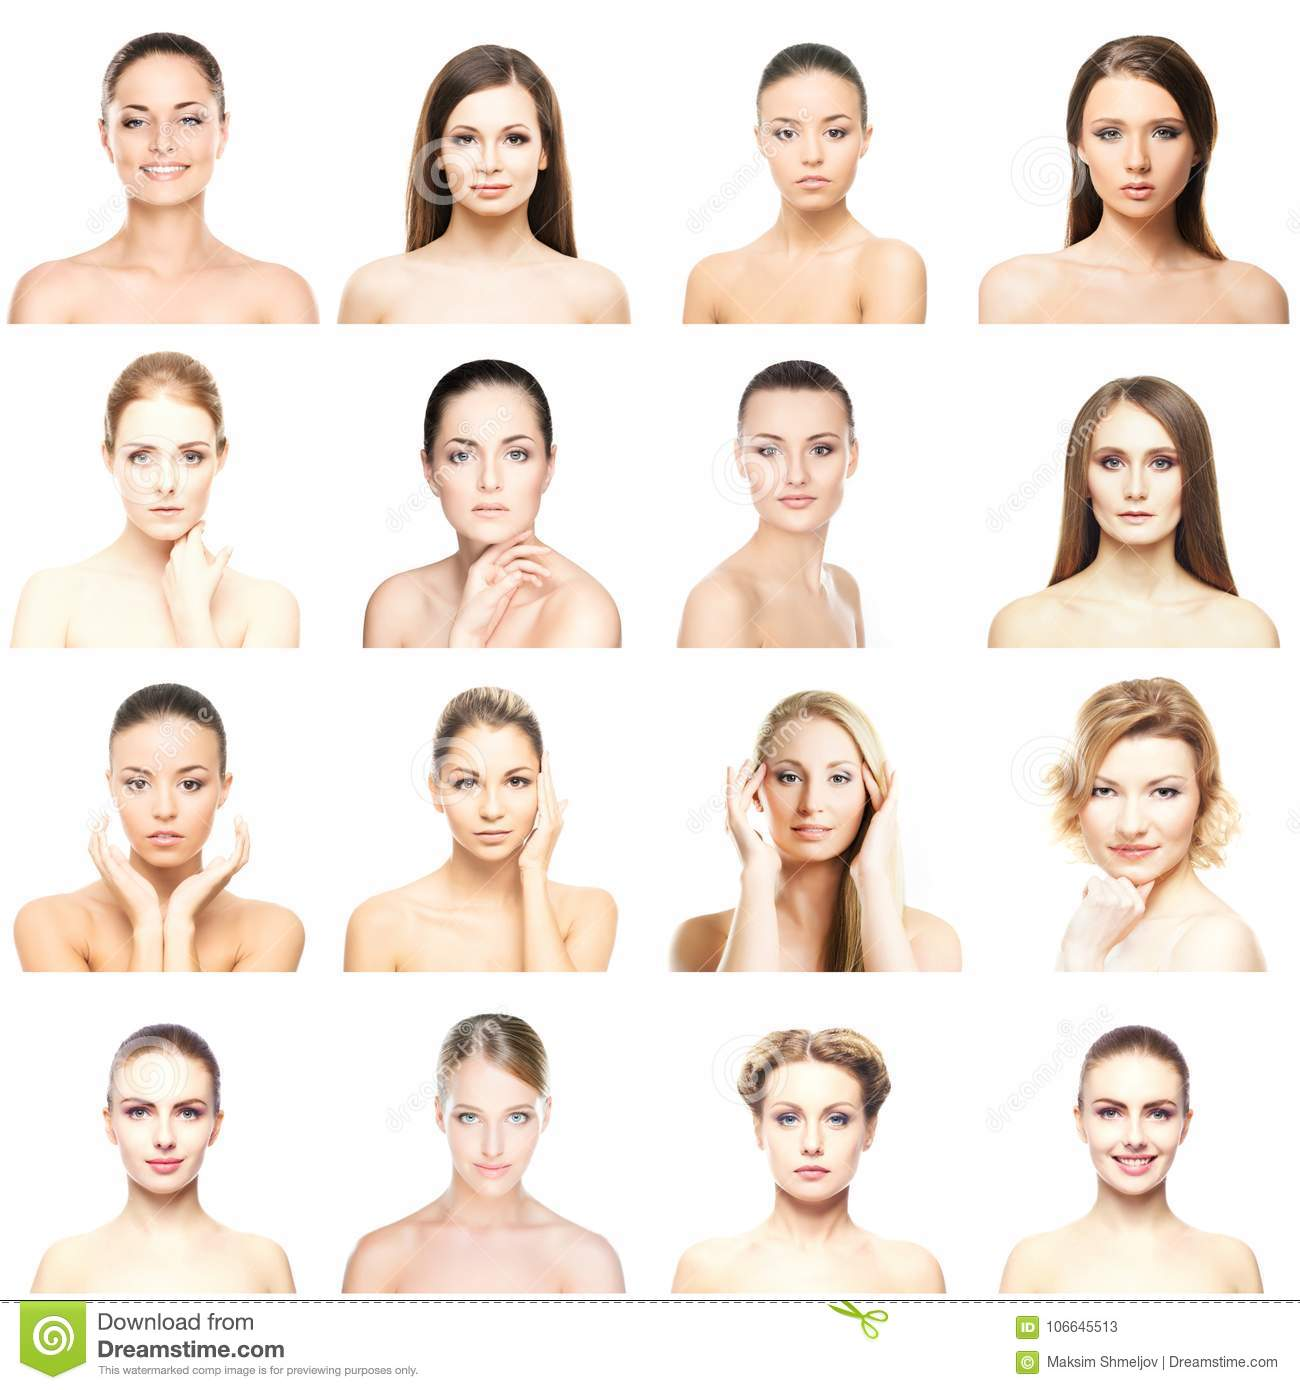 Collage of beautiful, healthy and young spa portraits. Faces of different women. Face lifting, skincare, plastic surgery